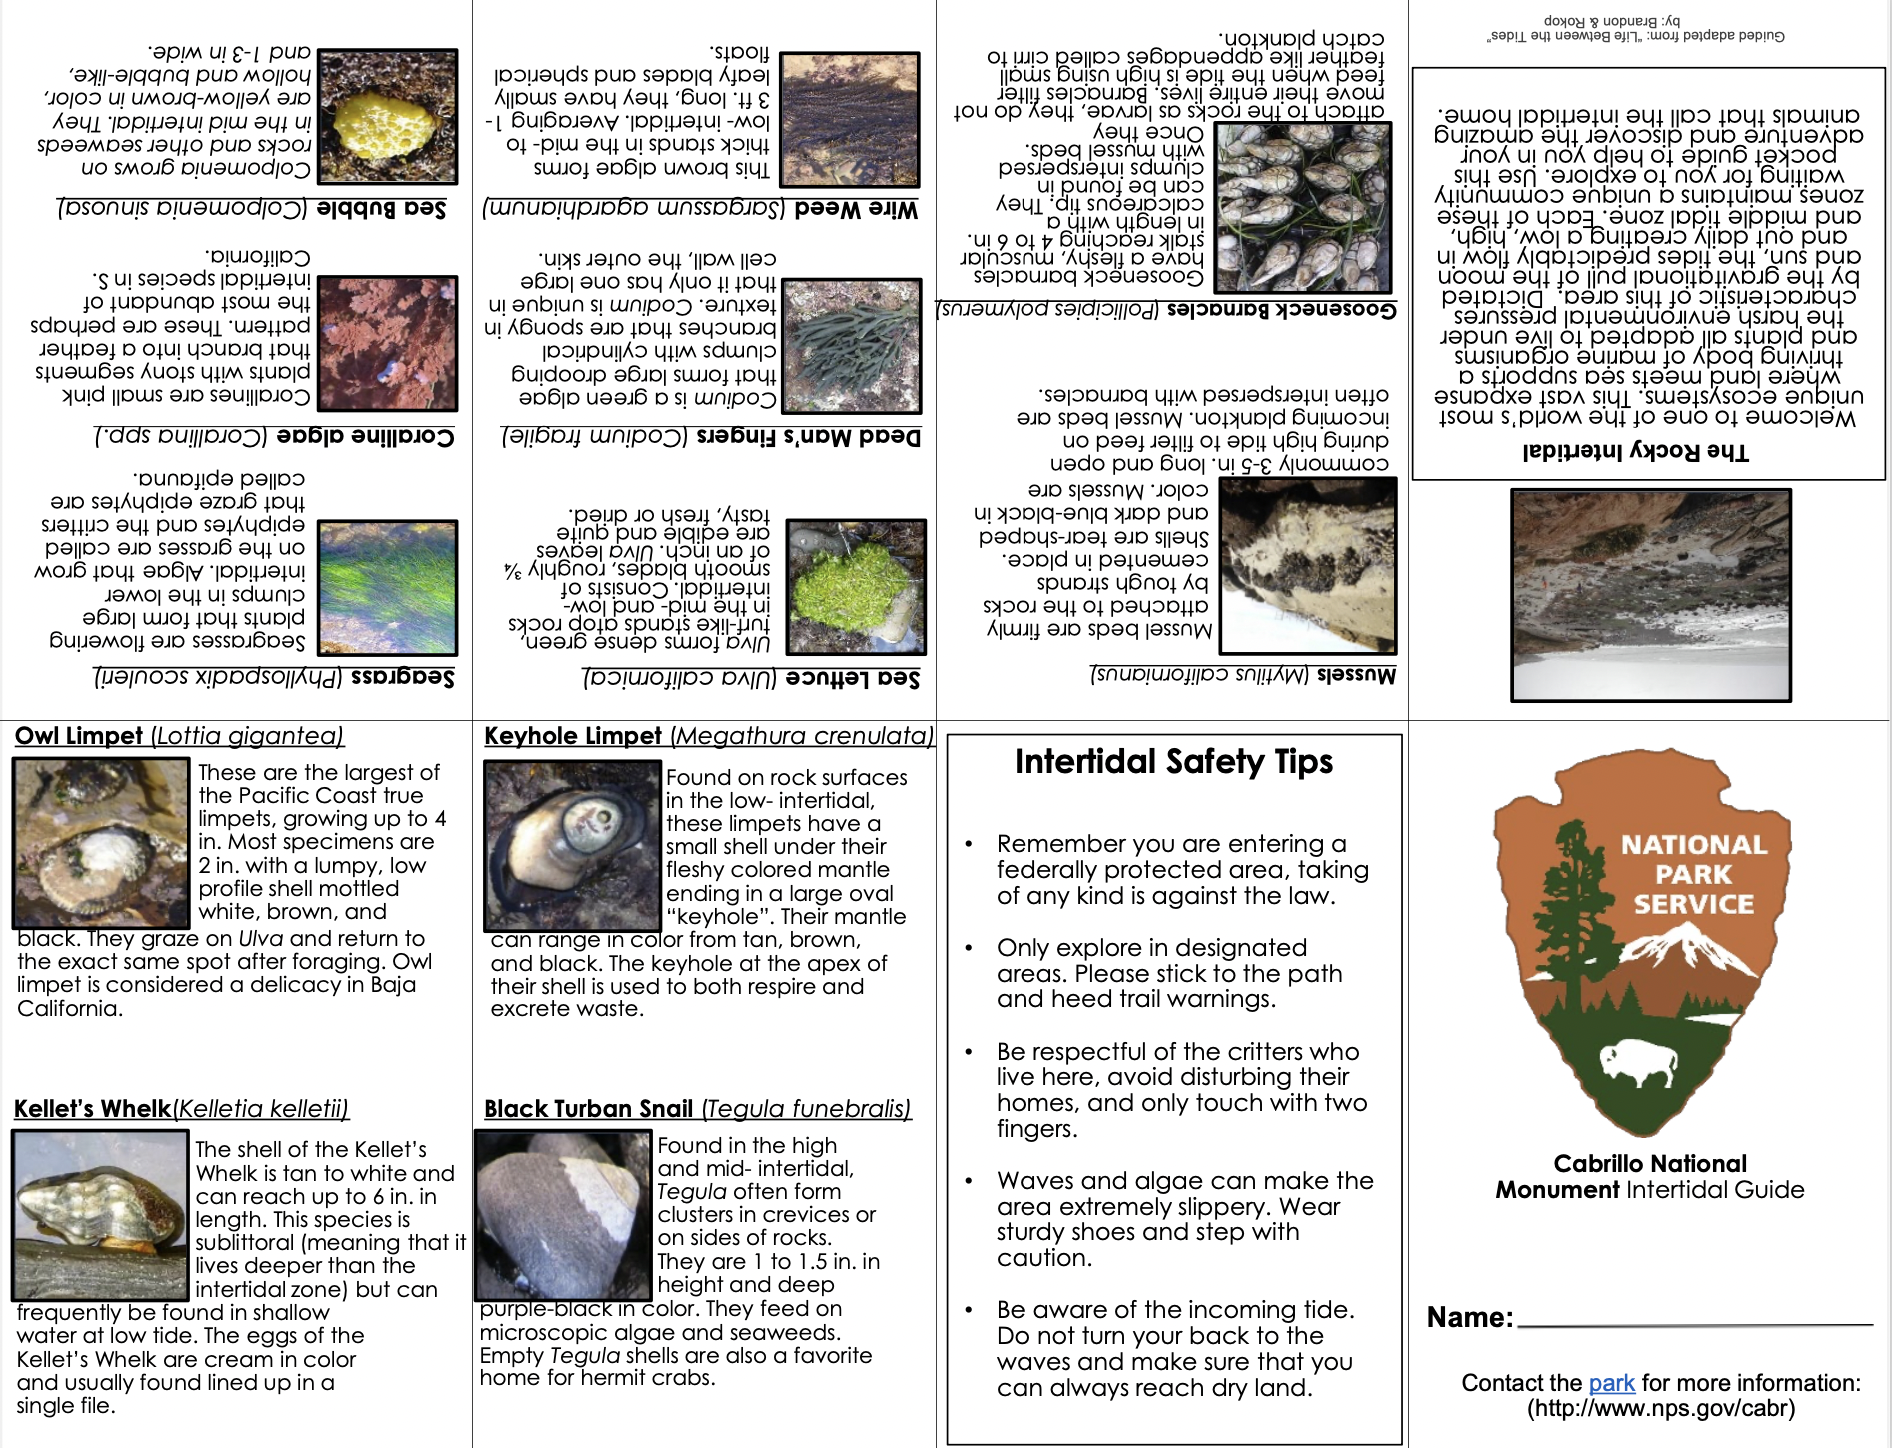 Text and images showing various animals in the tidepools